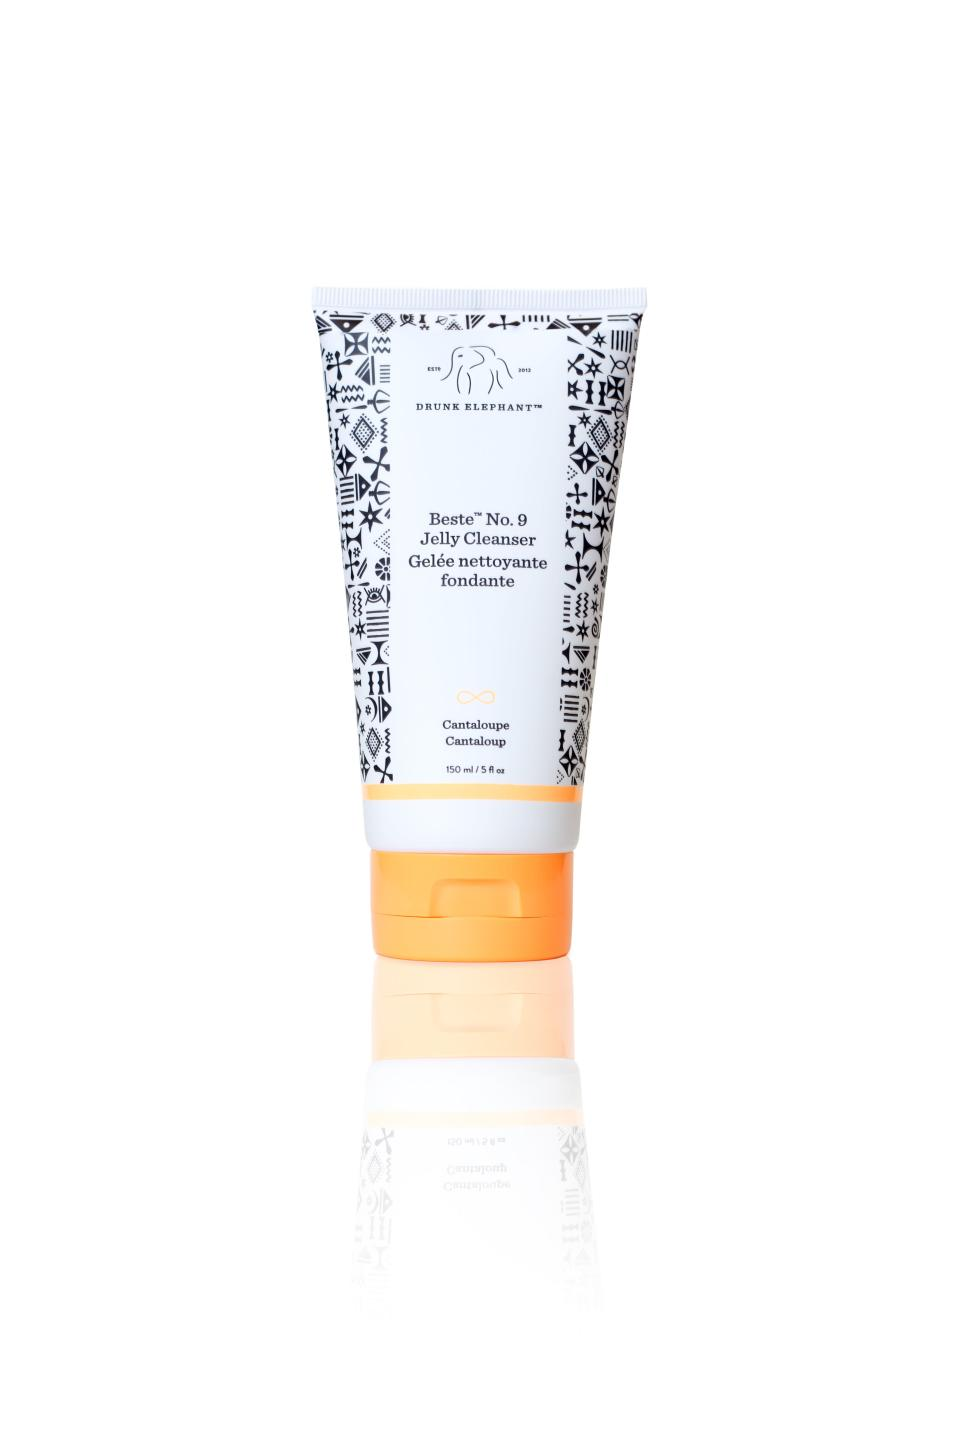 """<p>The obsession with Drunk Elephant's Beste No. 9 Cleanser is real — and for all the right reasons. Like all products from the brand, commonplace irritants like silicones and fragrance are replaced with skin-perfecting goodness like makeup-melting emollients and mega-hydrators, aloe vera and glycerin, which do all the dirty work — or rather, clean work. Skin is left fresh and coddled with a post-wash glow thanks to marula oil and cantaloupe extract.</p> <p><strong>$32</strong> (<a href=""""https://shop-links.co/1689628335050945875"""" rel=""""nofollow noopener"""" target=""""_blank"""" data-ylk=""""slk:Shop Now"""" class=""""link rapid-noclick-resp"""">Shop Now</a>)</p>"""